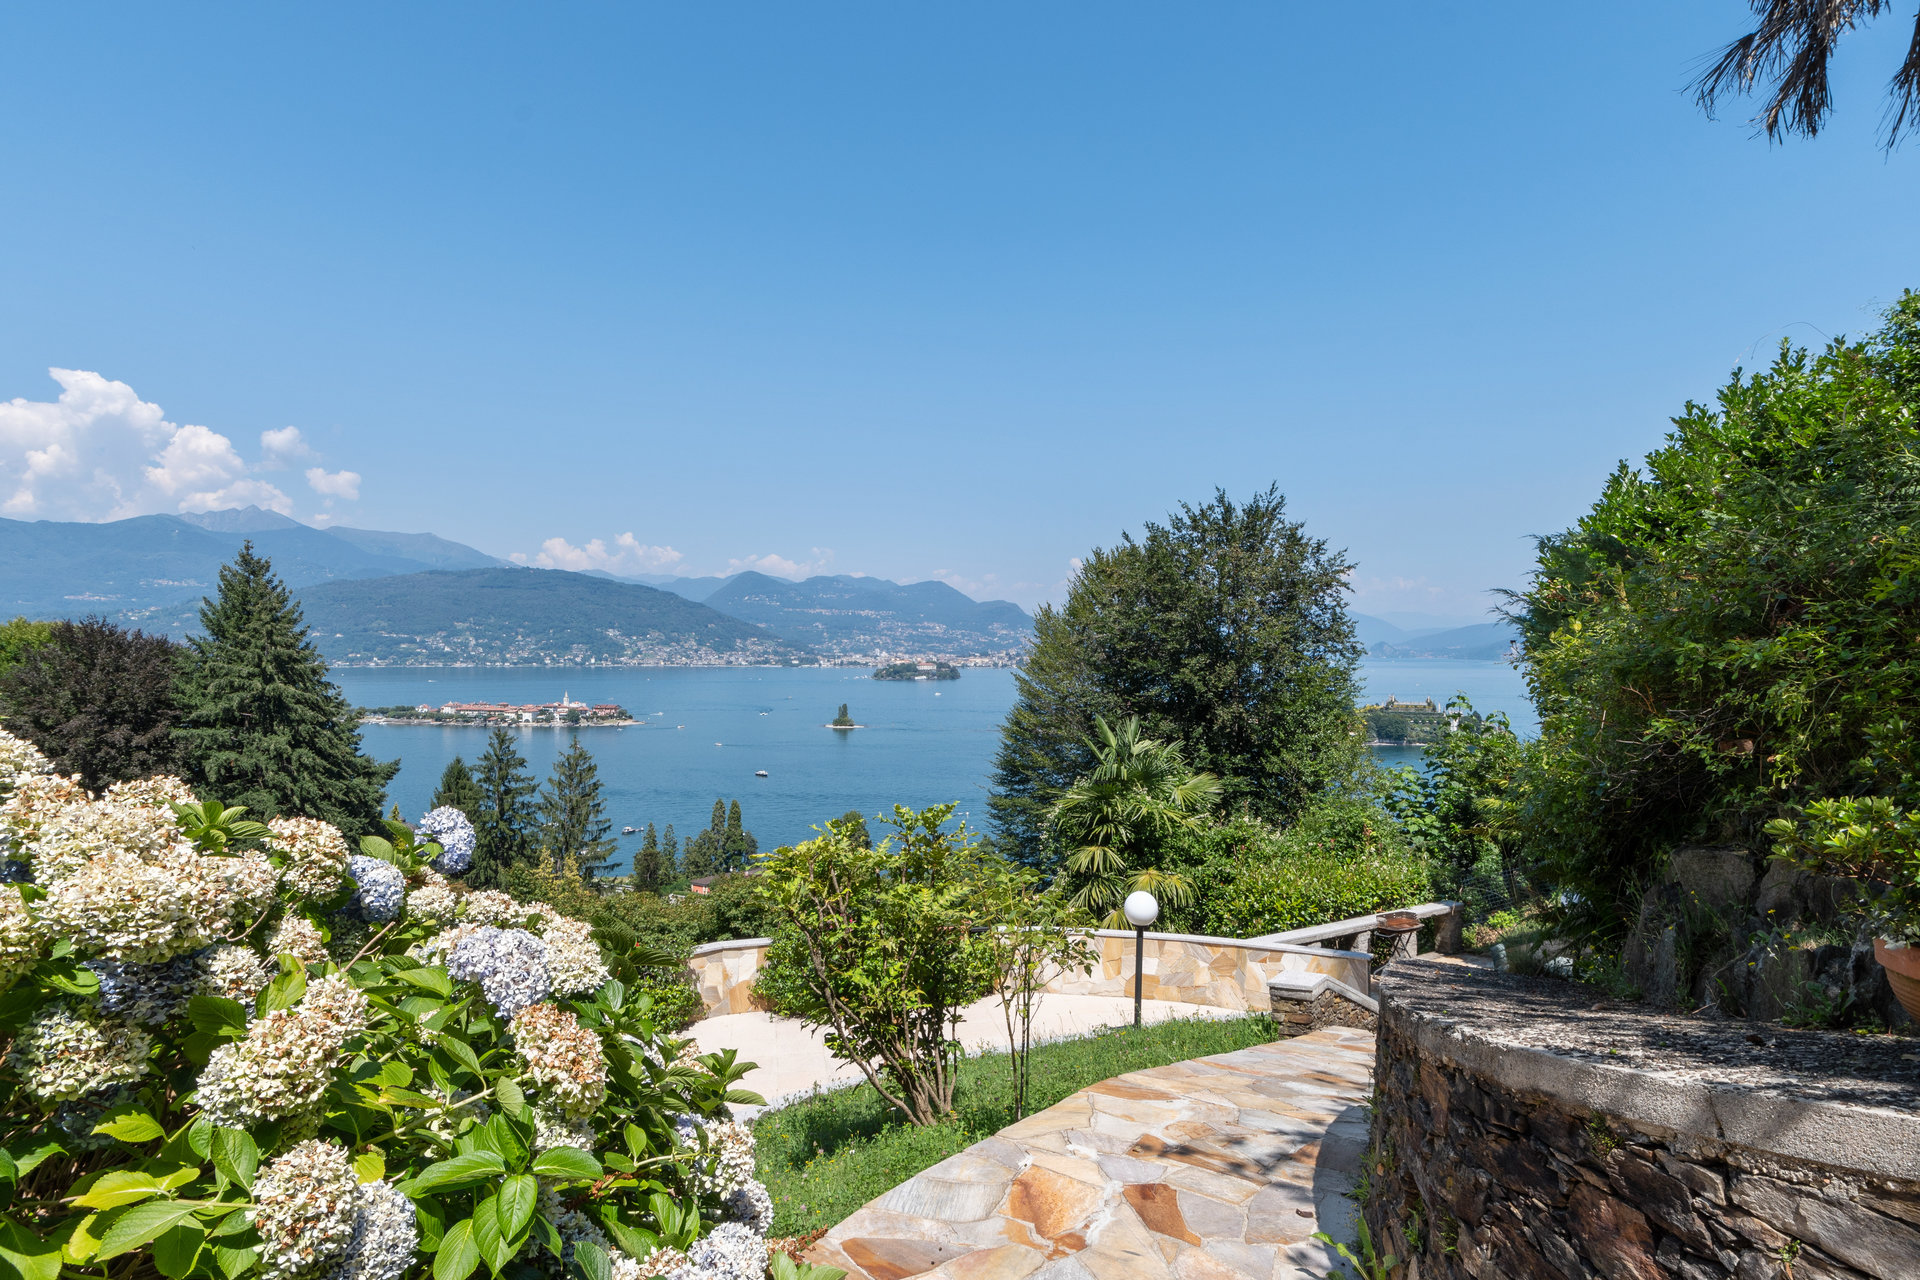 Villa for sale in Stresa with park and view on Borromean islands - lake view